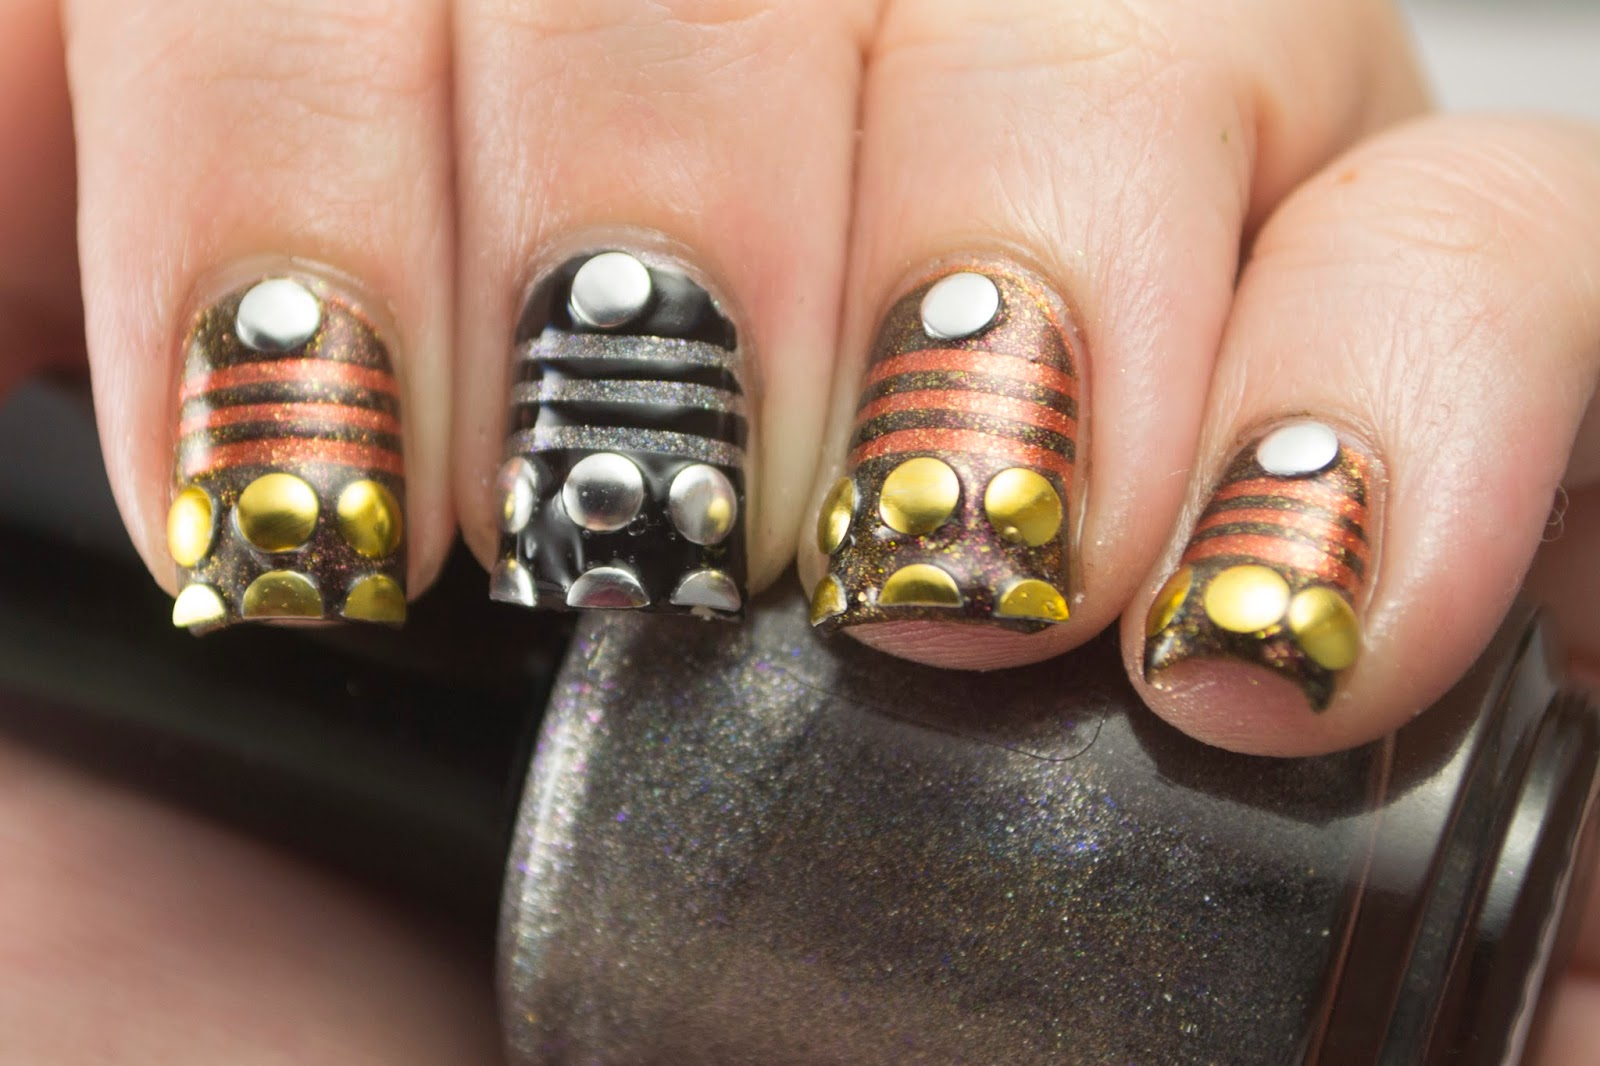 nails, nail polish, nail art, polish, pahlish, doctor who, daleks, sci fi, hey darling polish, nail art a go go